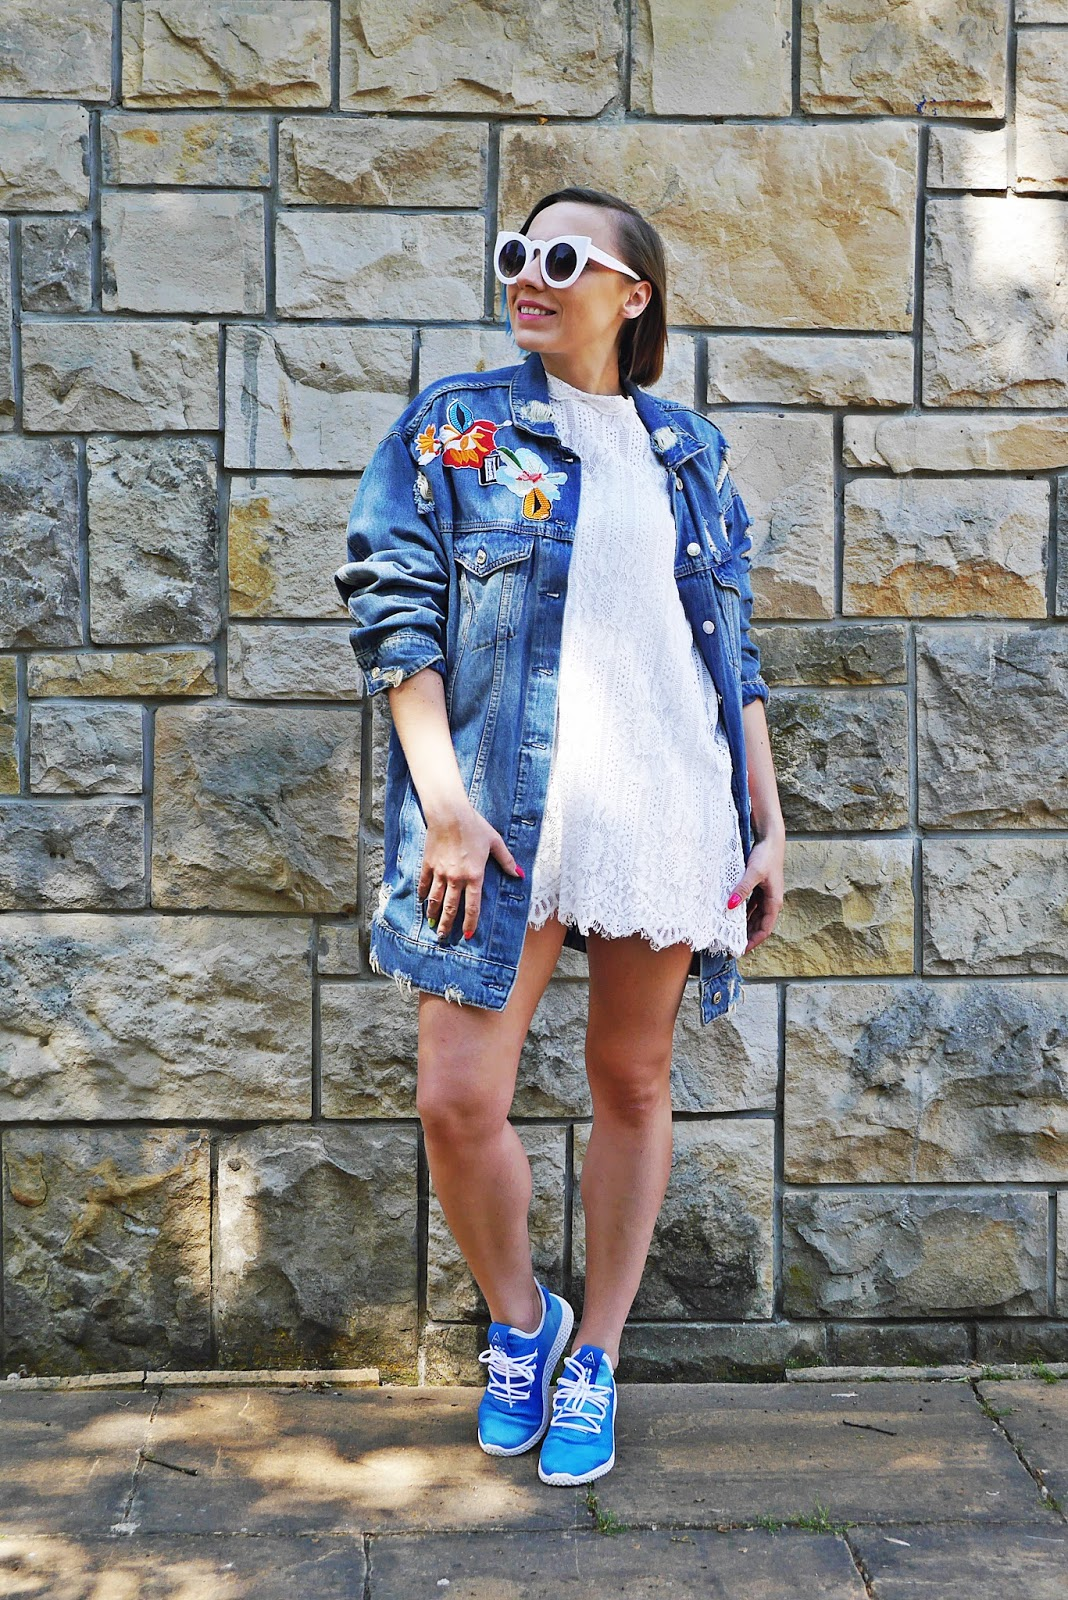 5_adidas_tennis_holi_hu_blue_lace_dress_denim_jacket_karyn_blog_modowy_140518